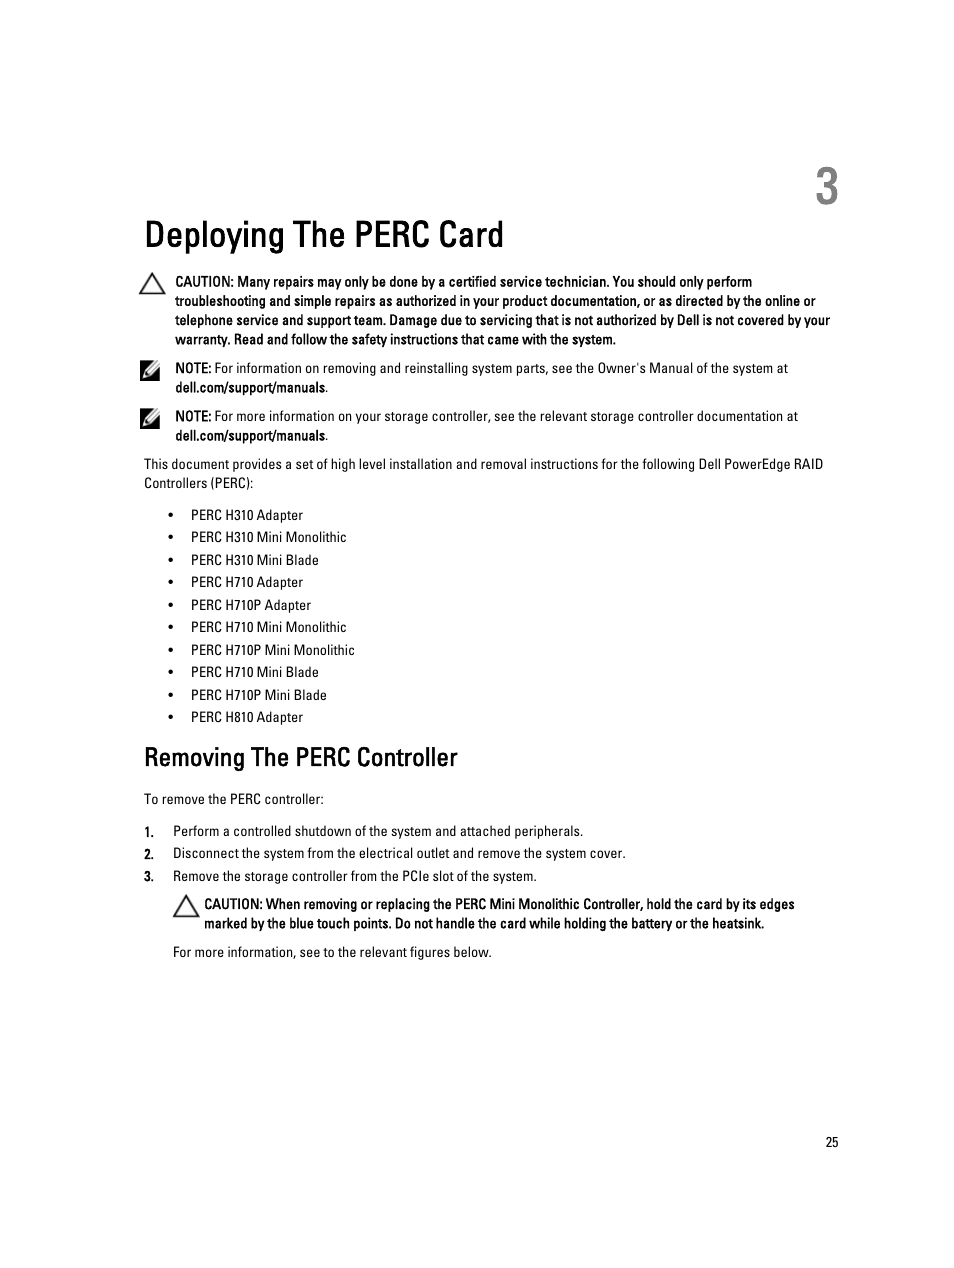 Deploying the perc card, Removing the perc controller, 3